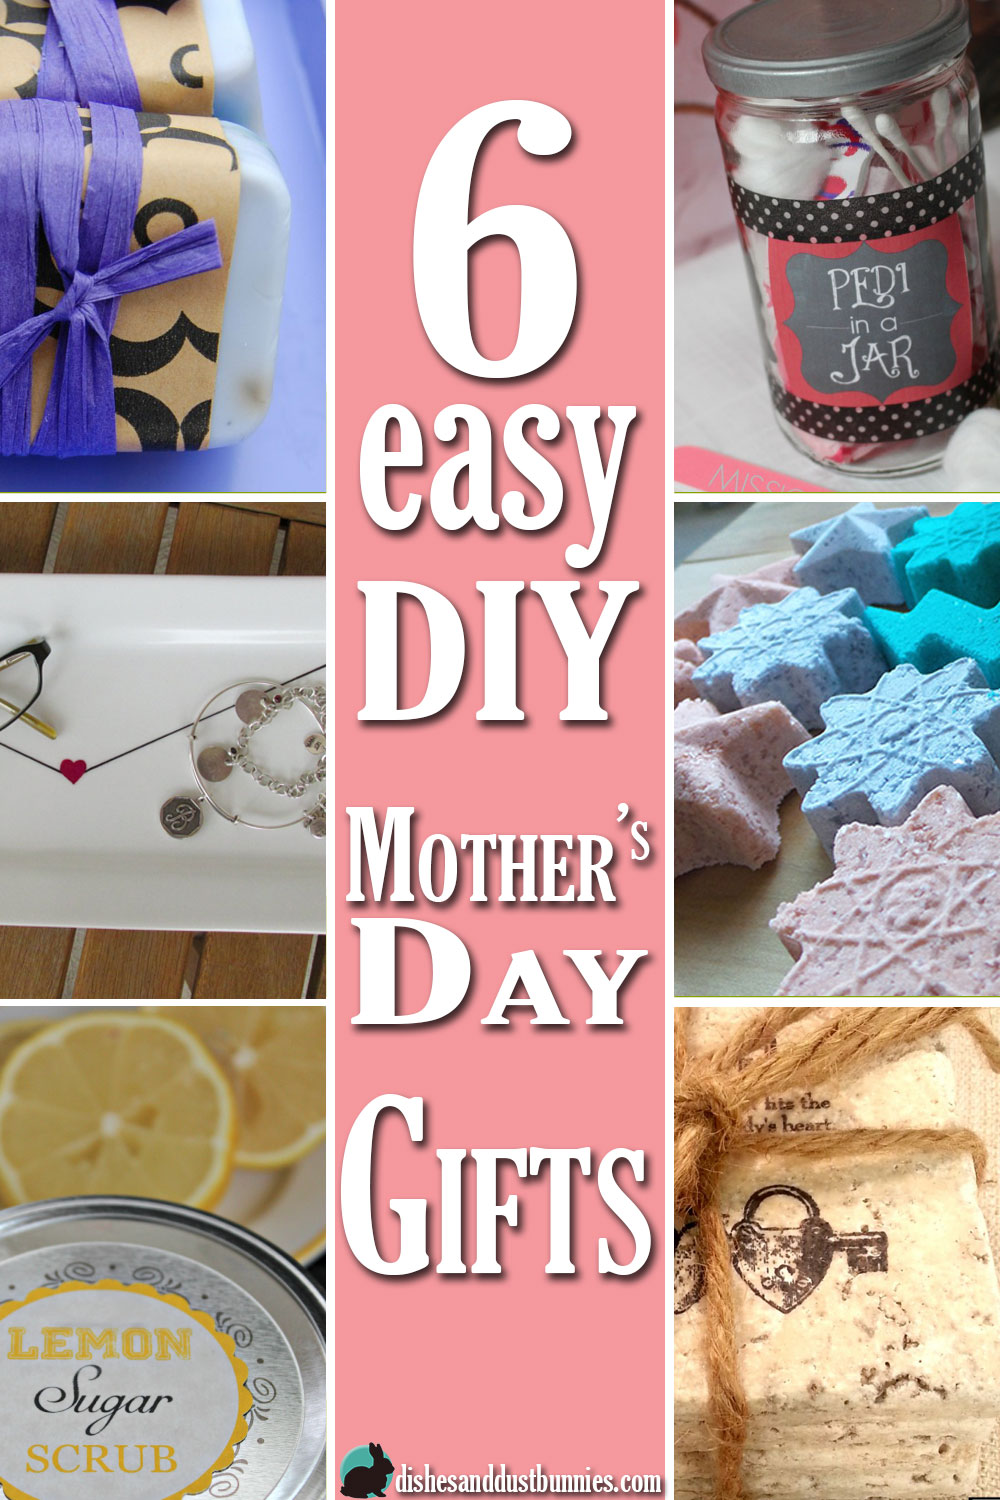 6 easy diy mother 39 s day gifts dishes and dust bunnies Mothers day presents diy